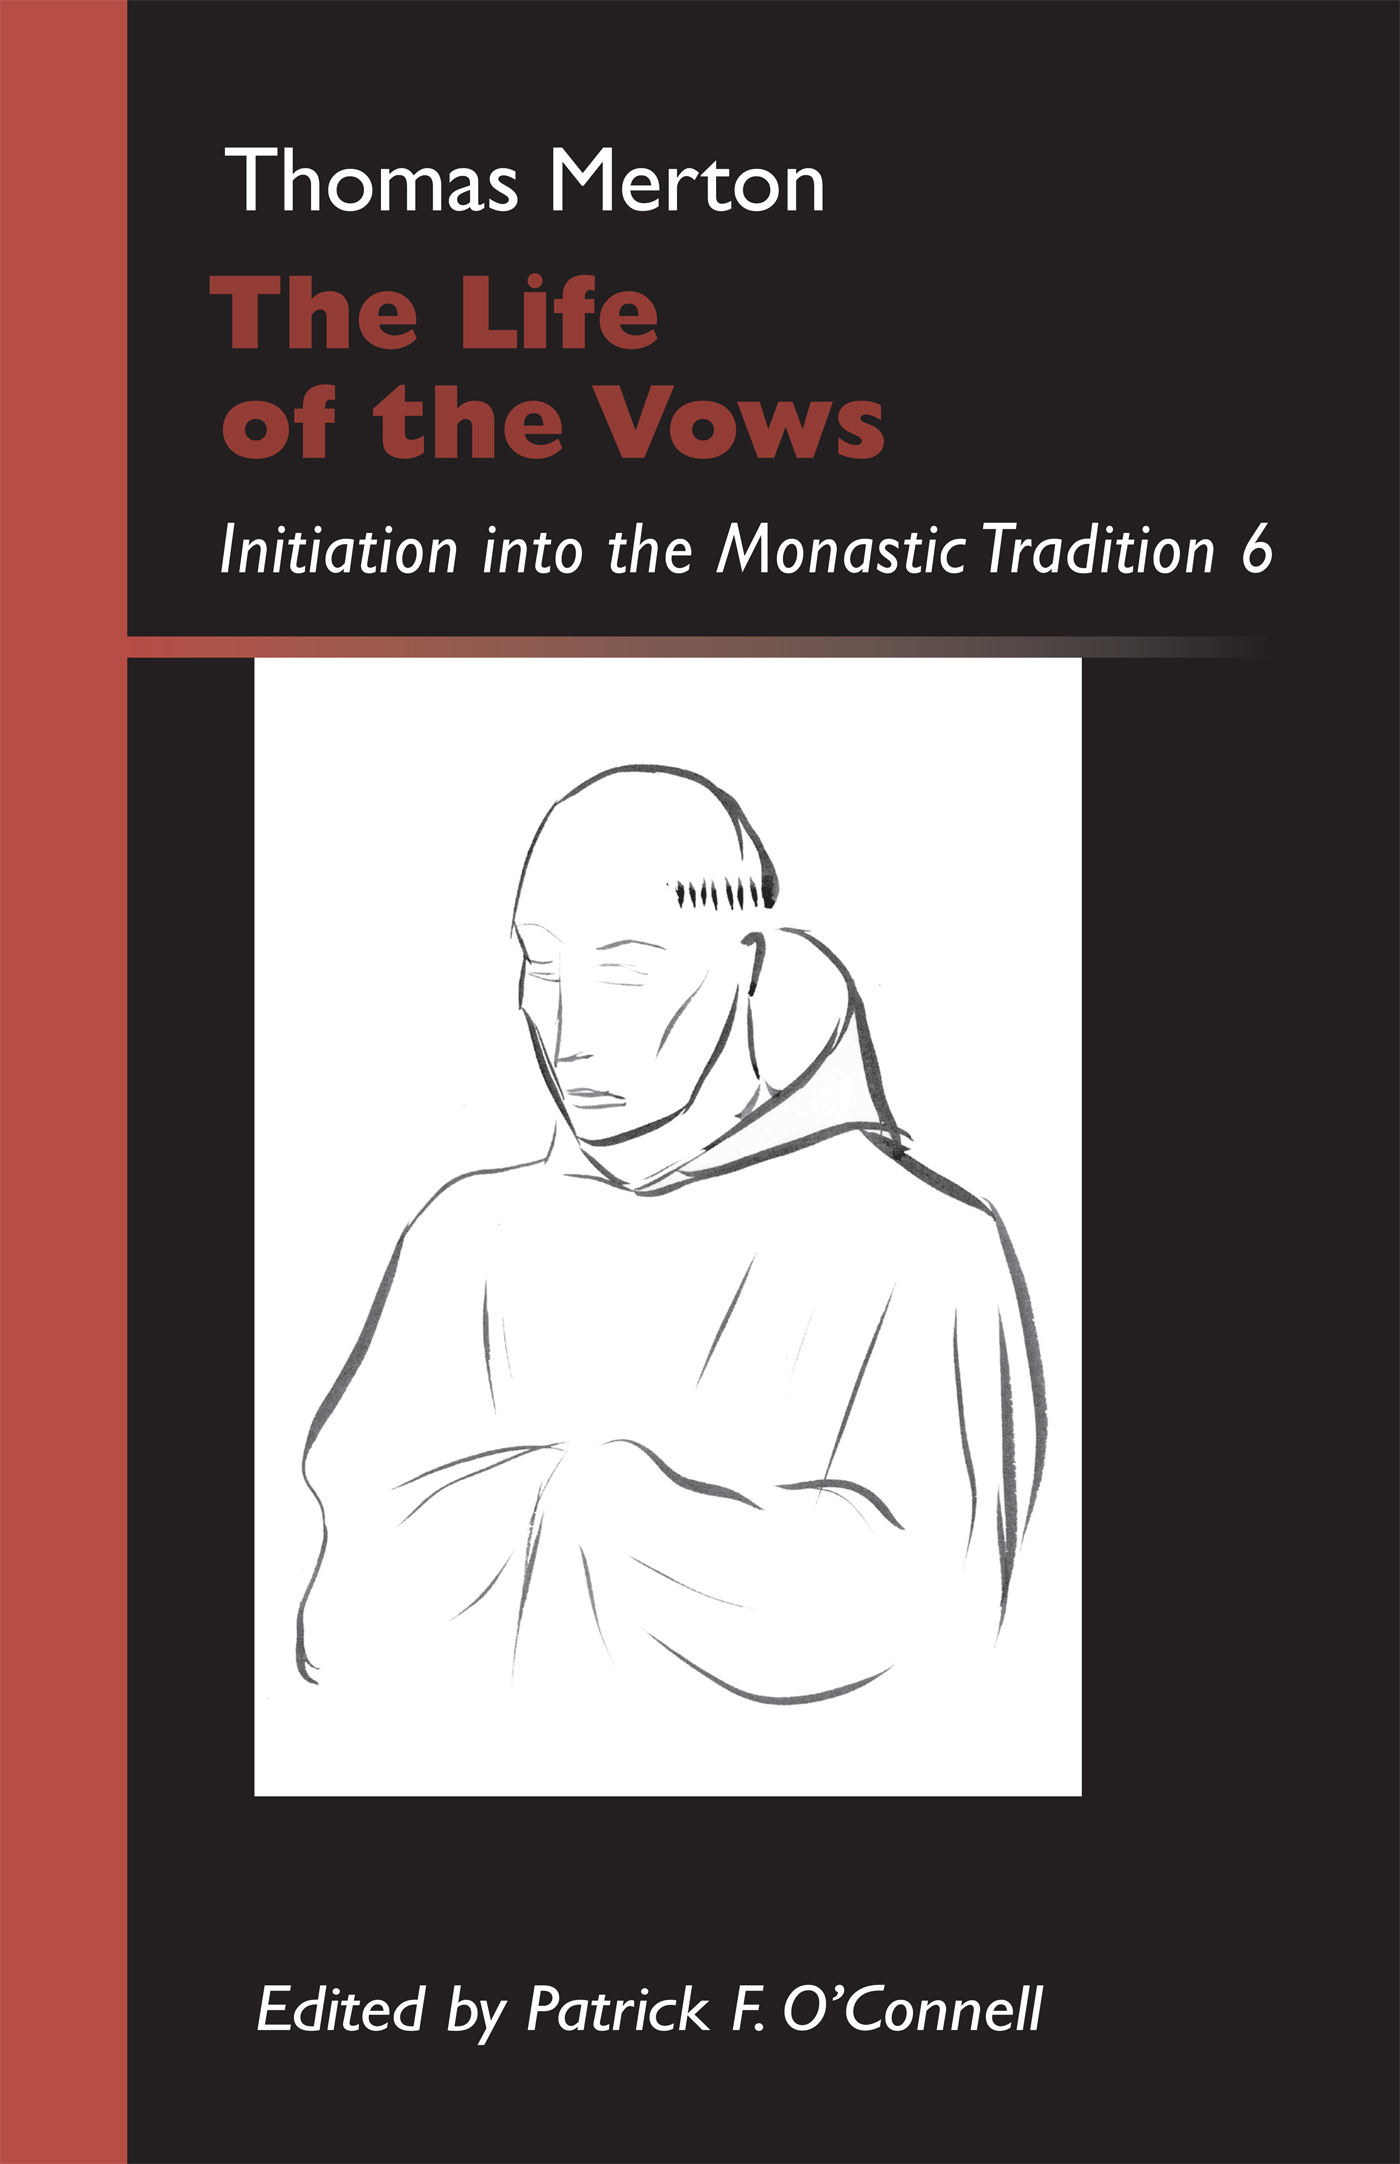 The Life of the Vows: Initiation into the Monastic Tradition 6